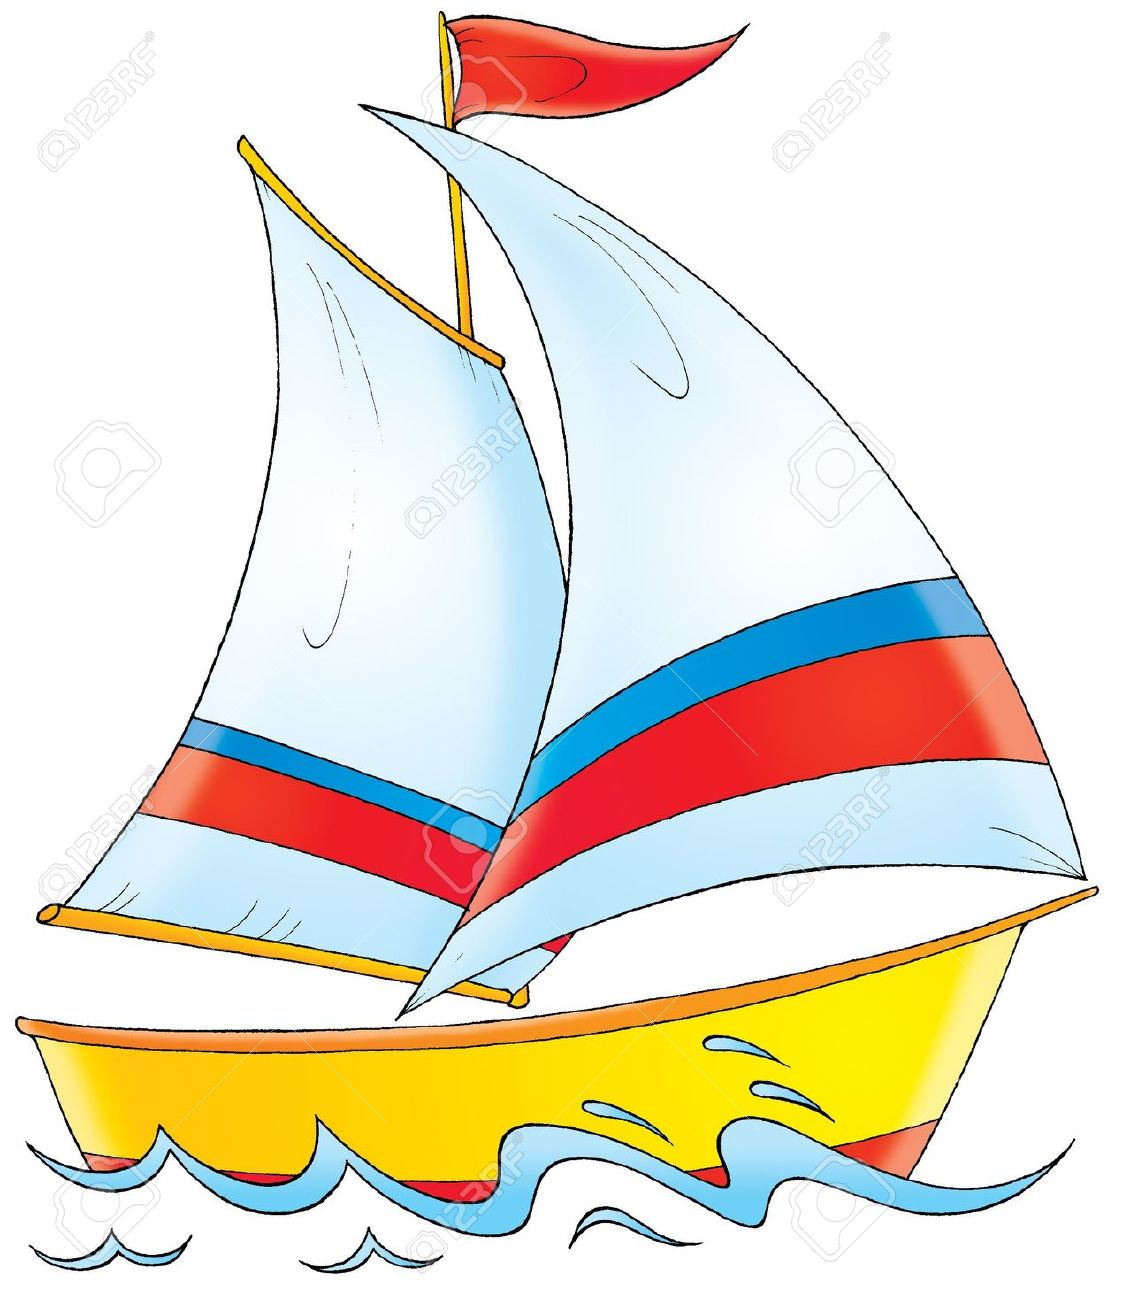 Boat clipart yacht.  clipartlook